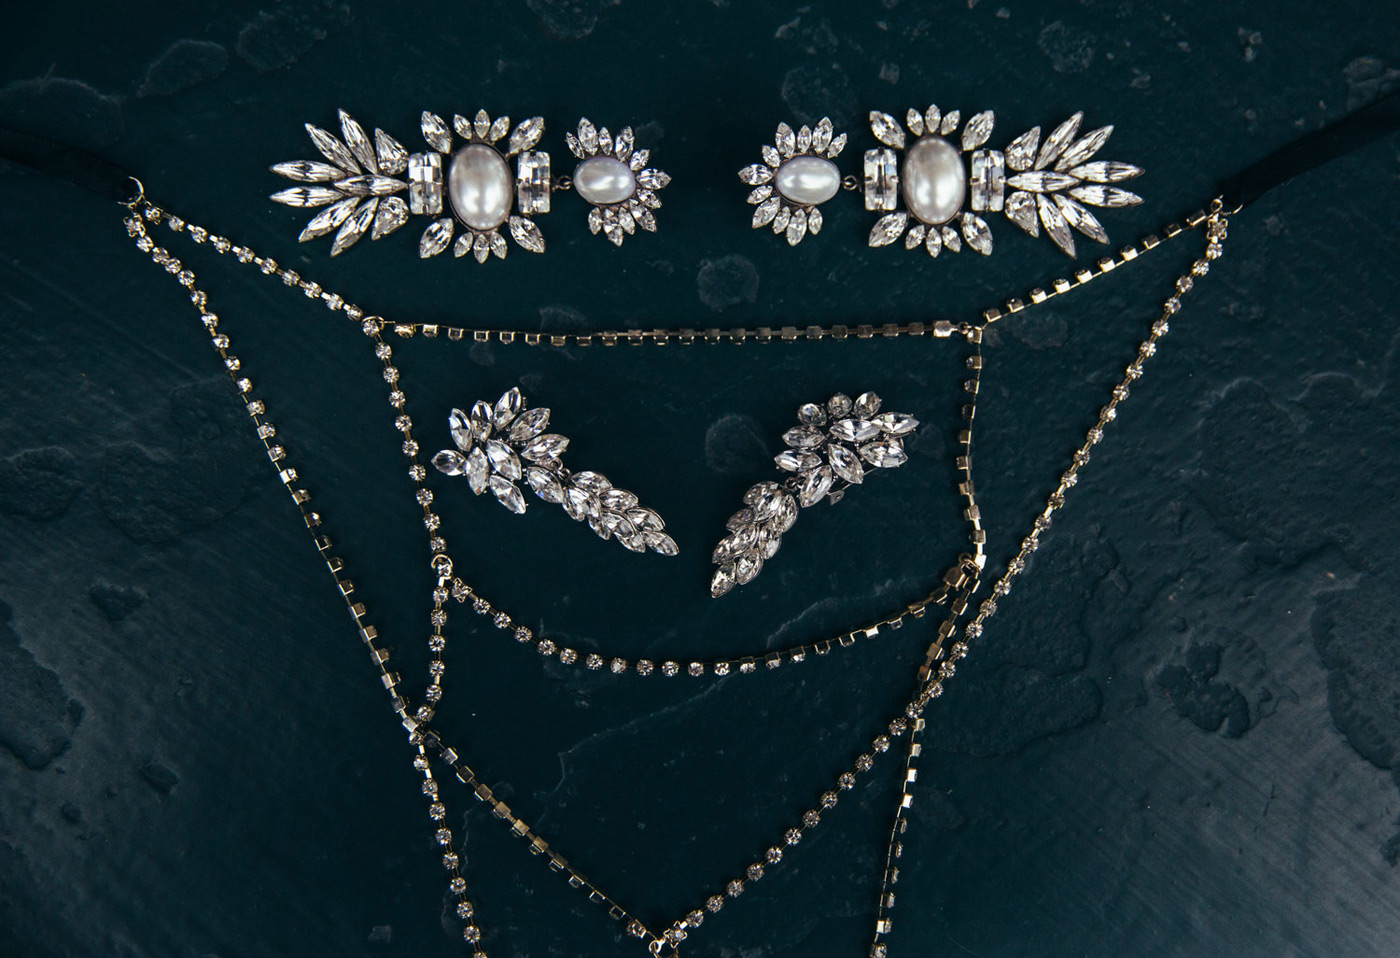 Diamond earring and necklaces for the bride to wear